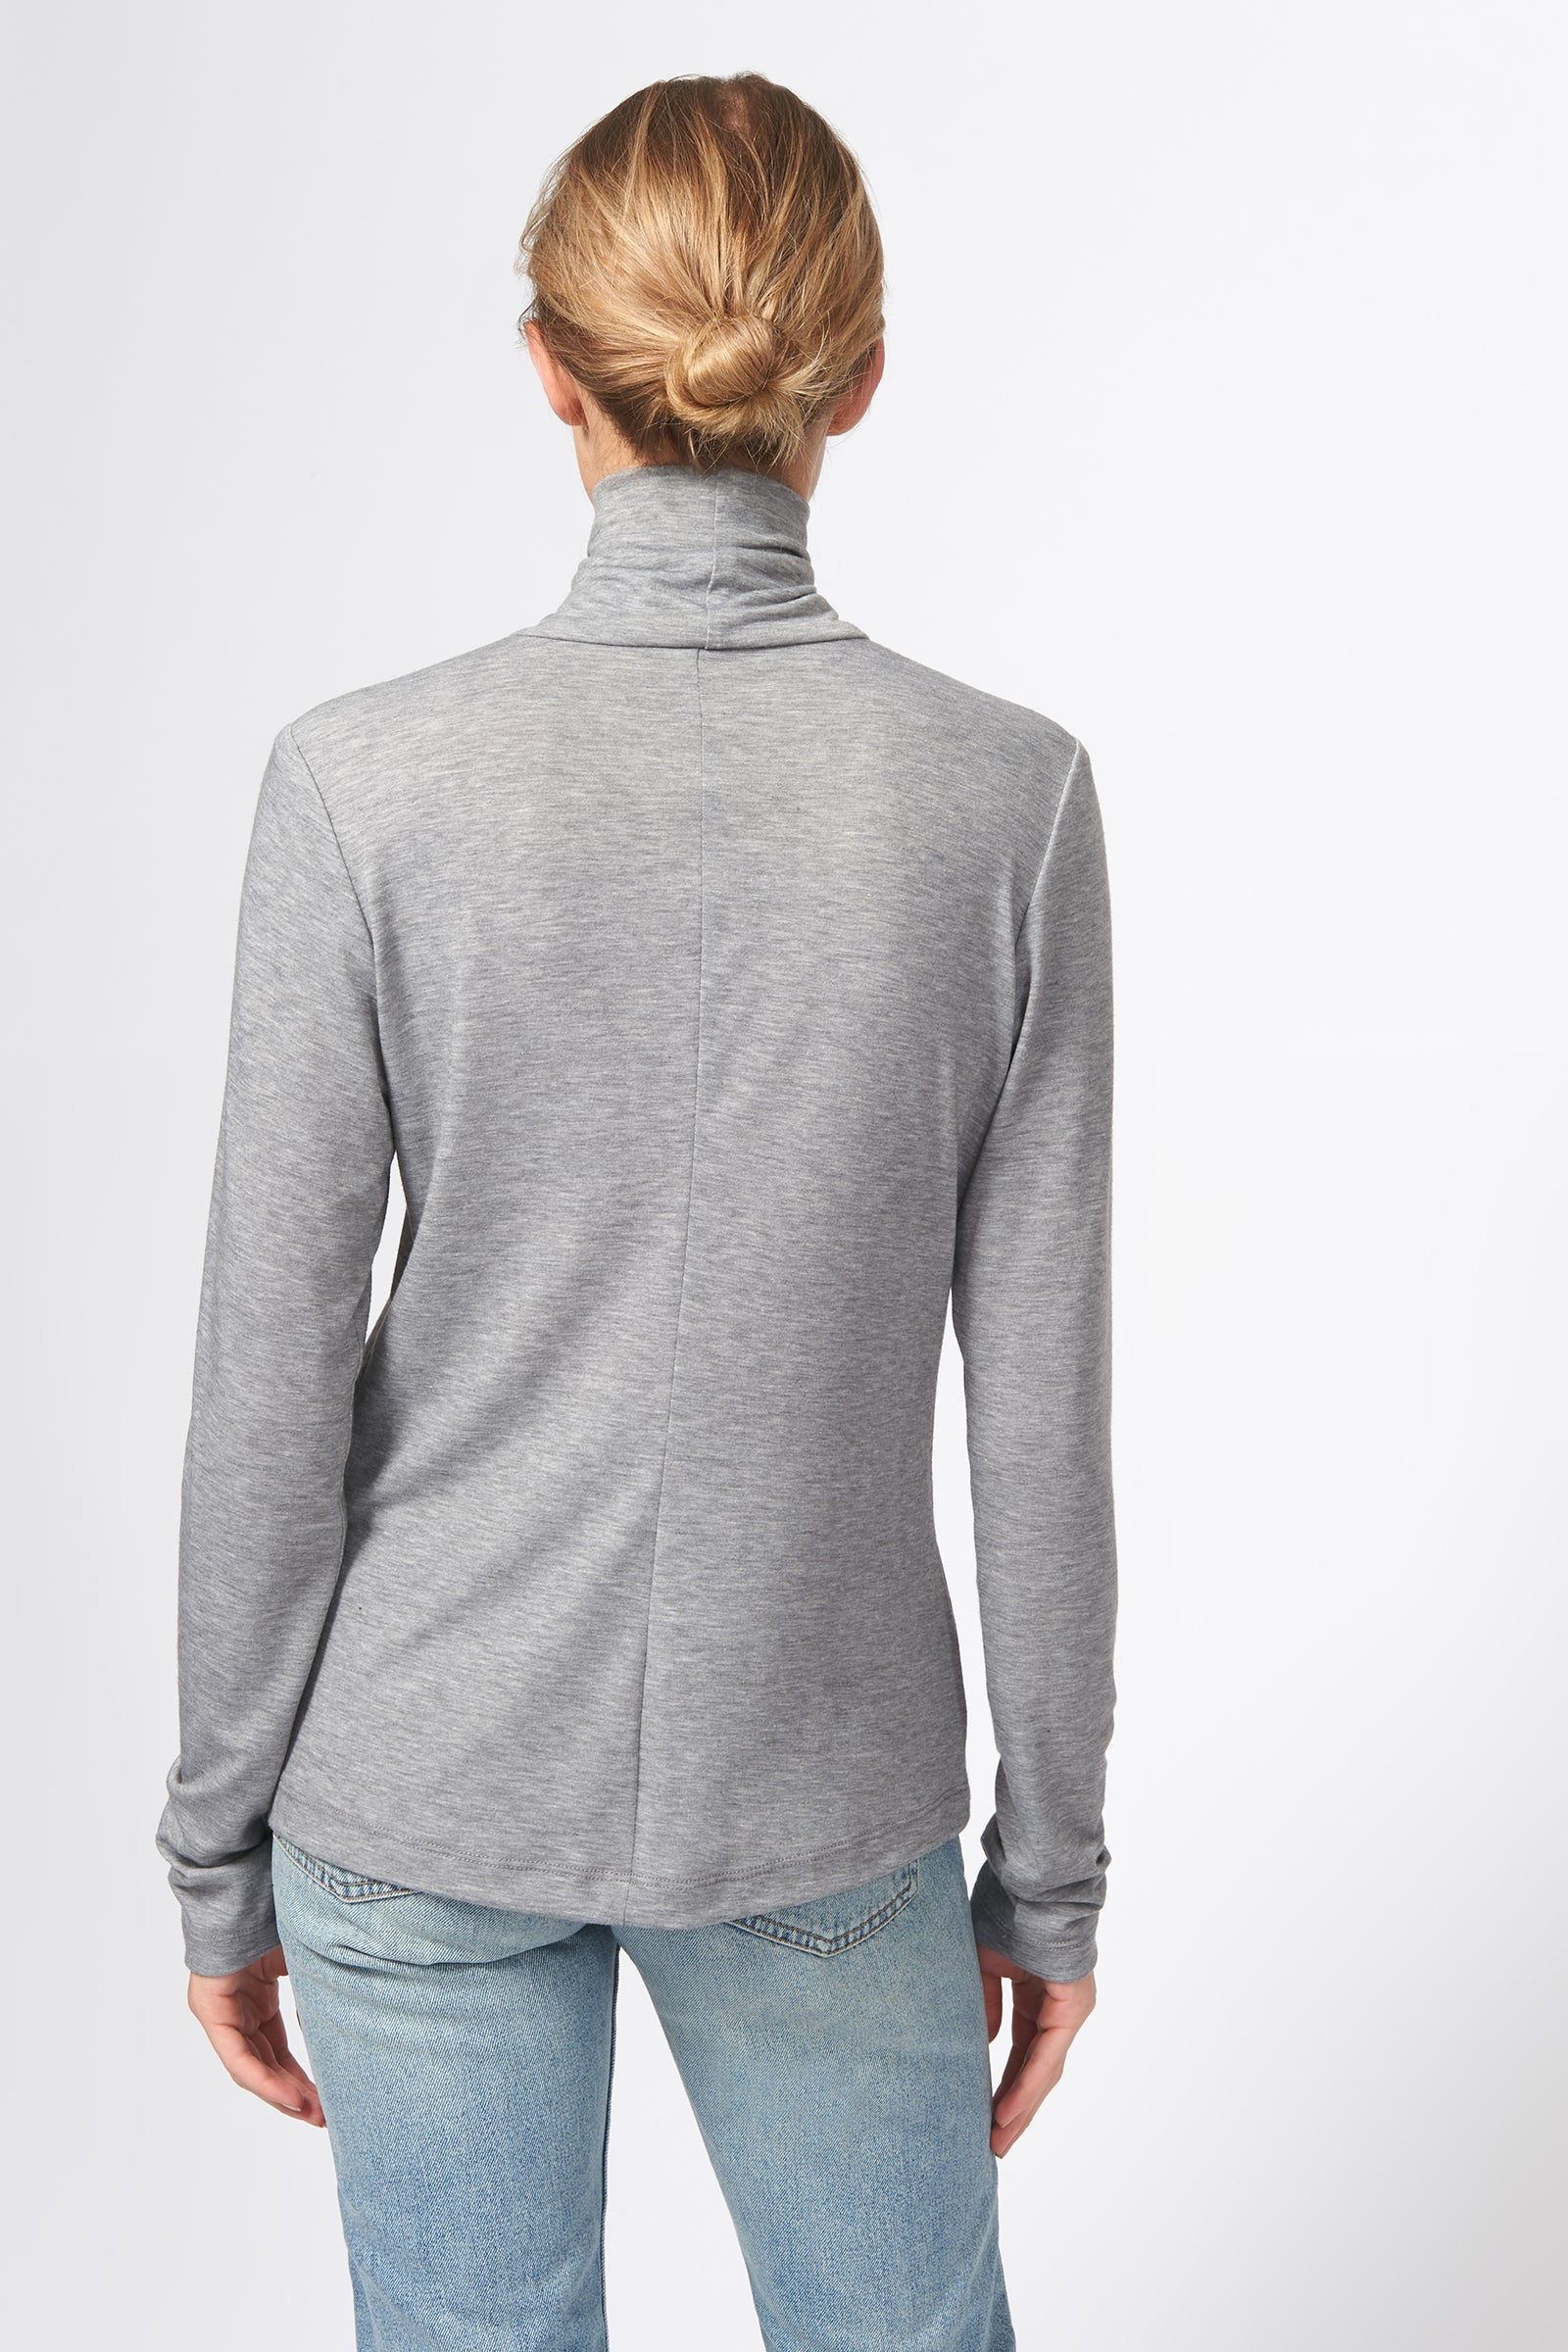 Kal Rieman Seamed Turtleneck in Grey on Model Front View